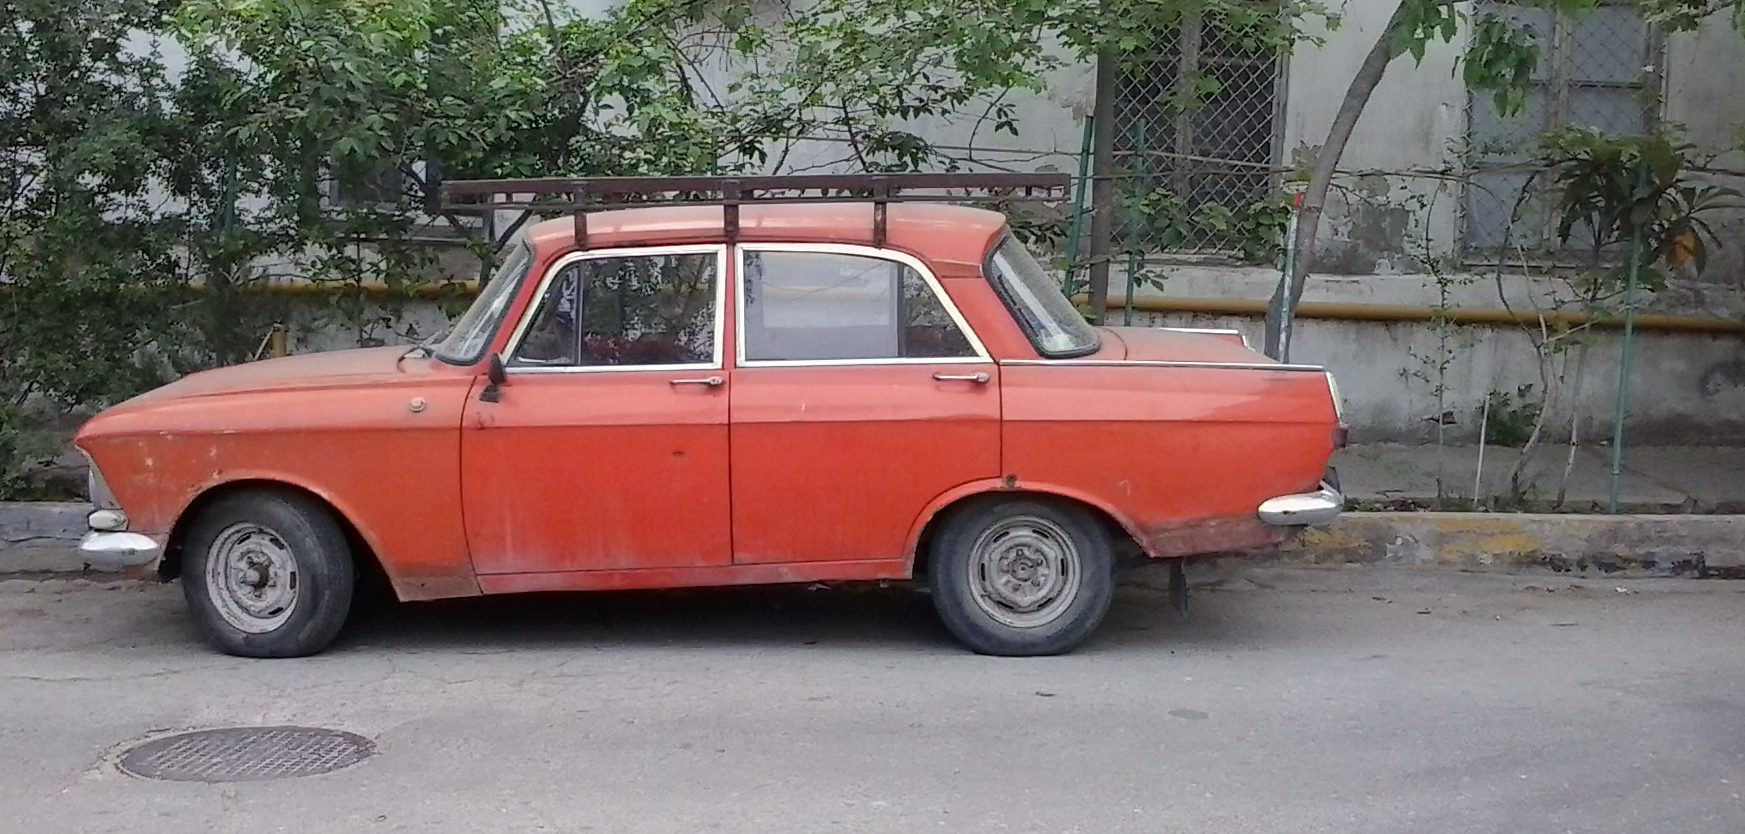 old red car